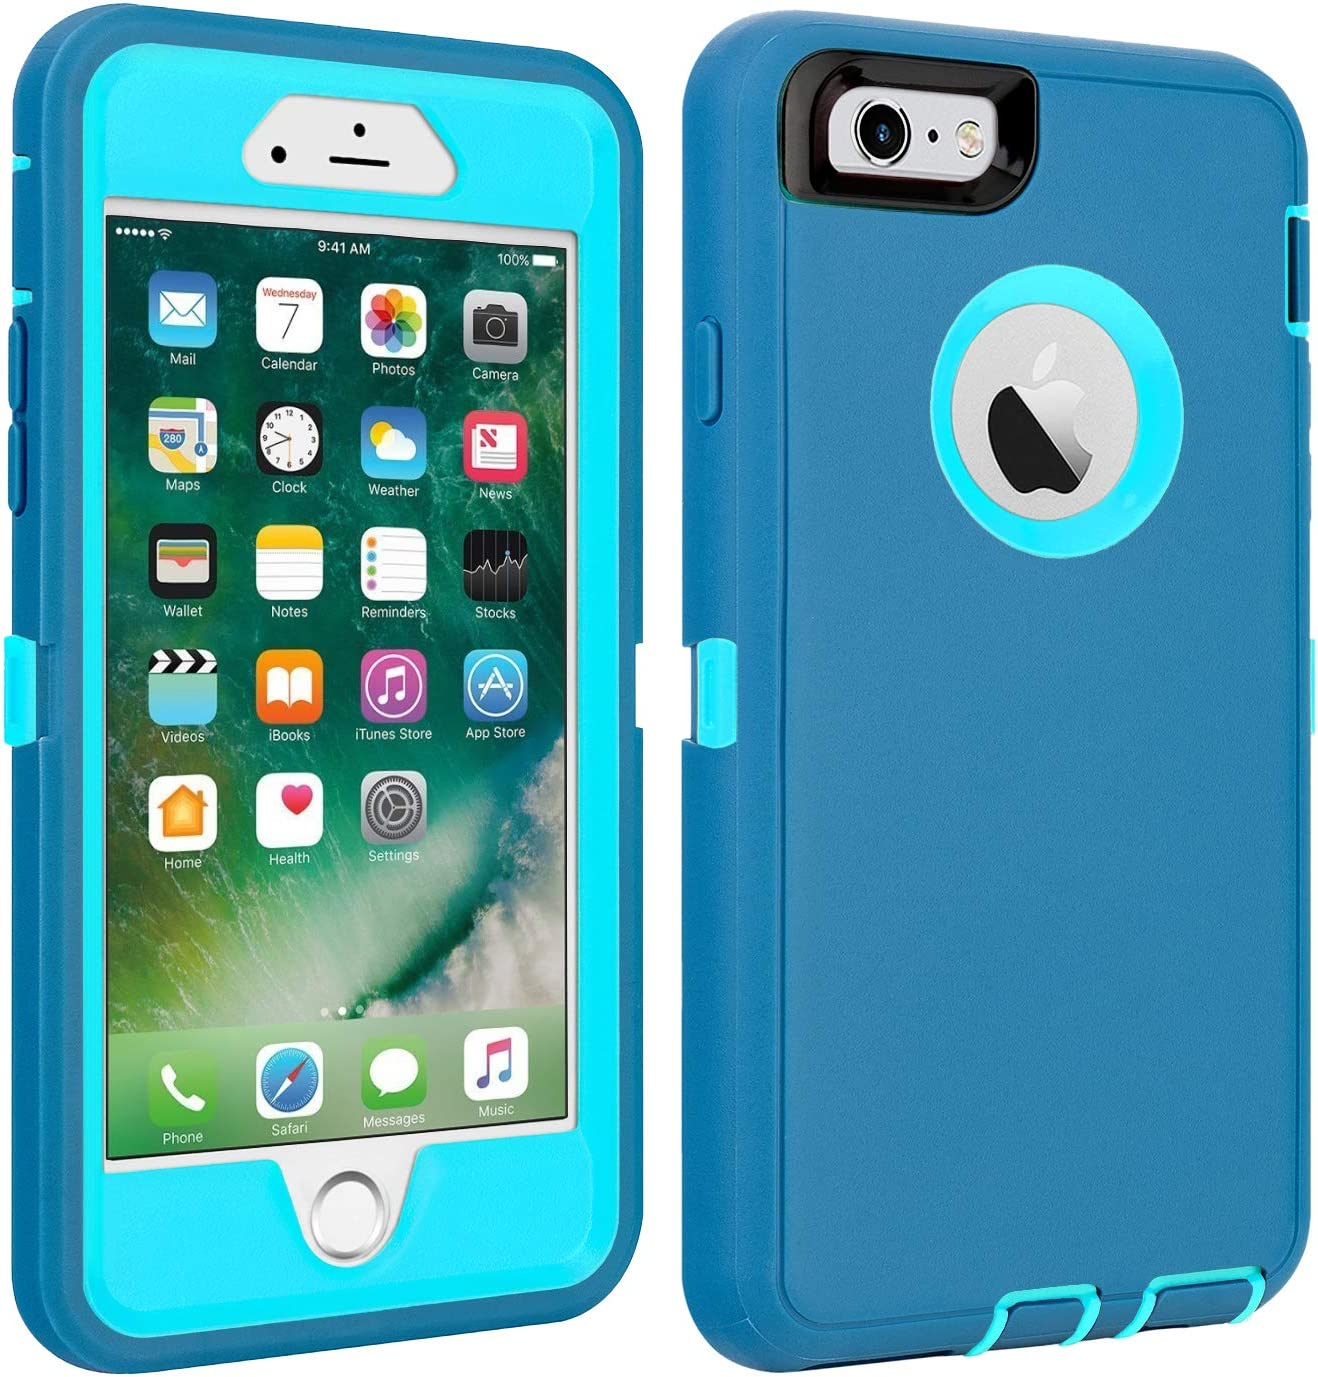 """iPhone 6/6S Case Shockproof High Impact Tough Rubber Rugged Hybrid Case Silicone Triple Protective Anti-Shock Shatter-Resistant Mobile Phone Case for iPhone 6/6S4.7"""" (LtBlue)"""